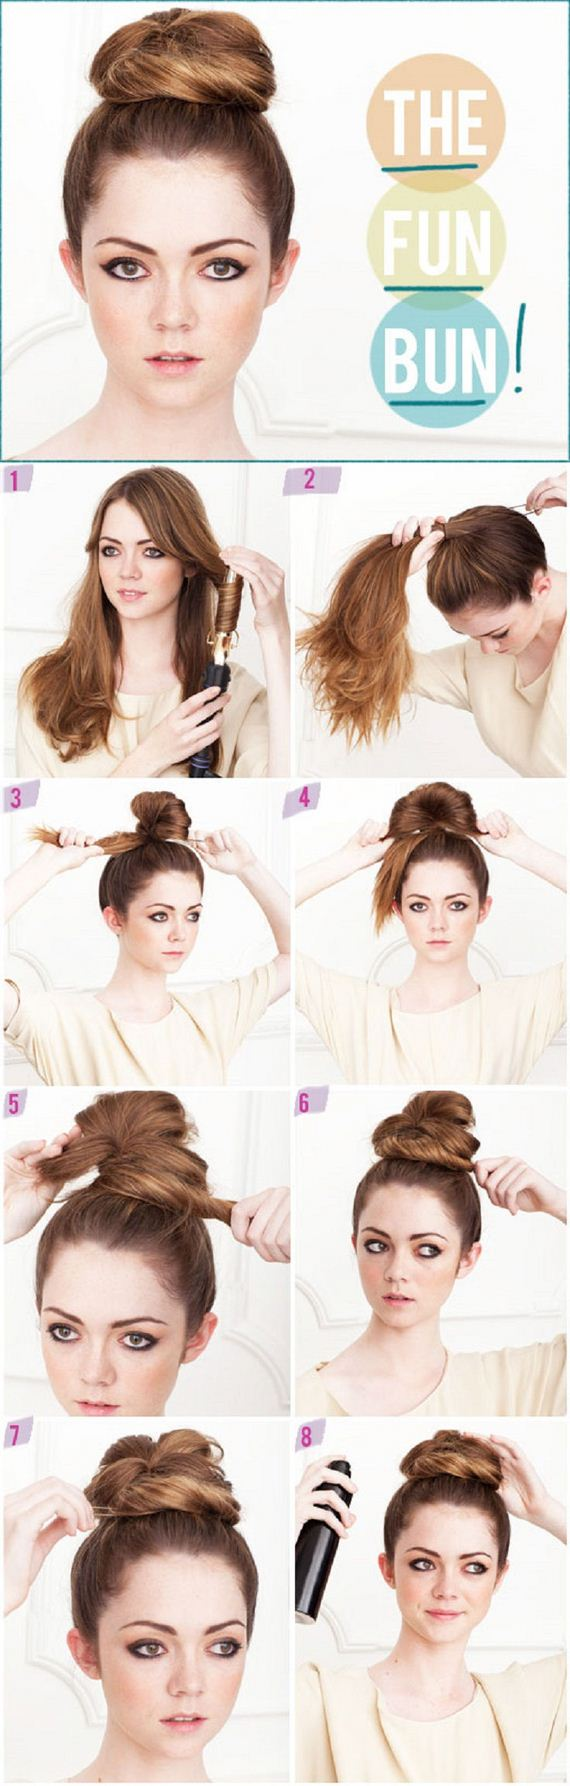 05-Quick-And-Easy-Hair-Buns